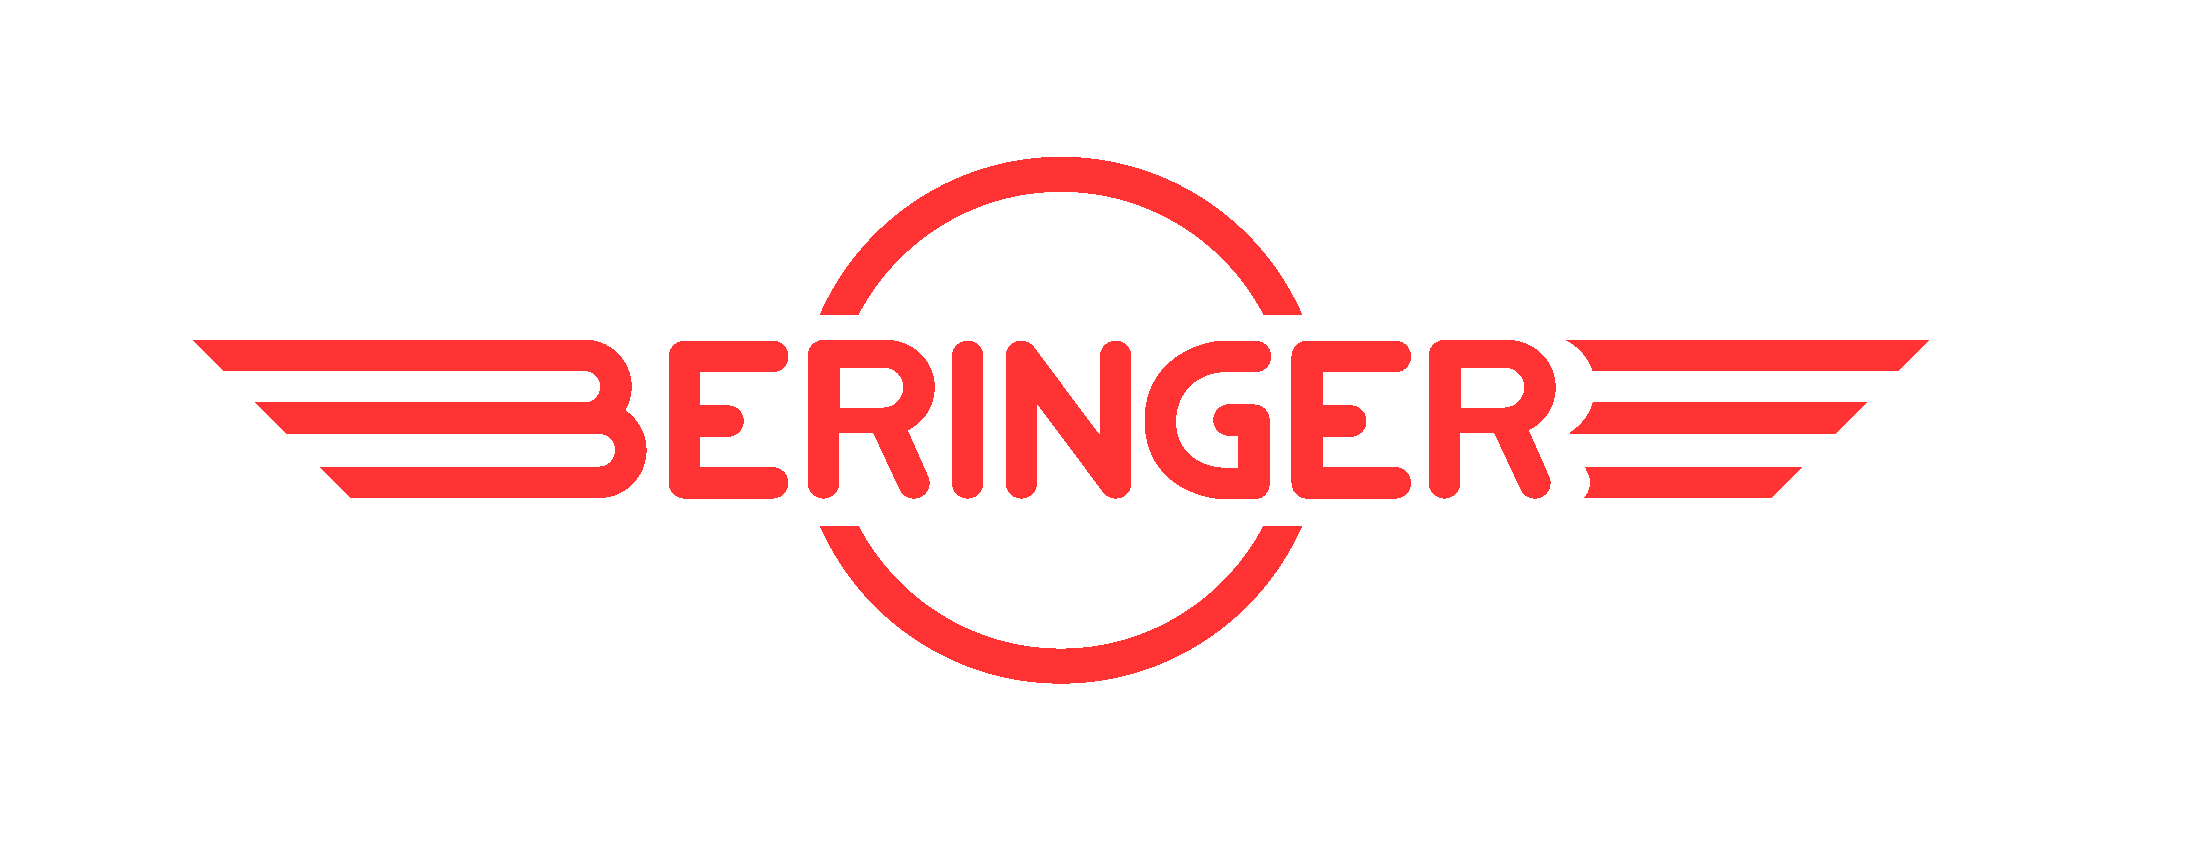 beringer logo pictures to pin on pinterest pinsdaddy